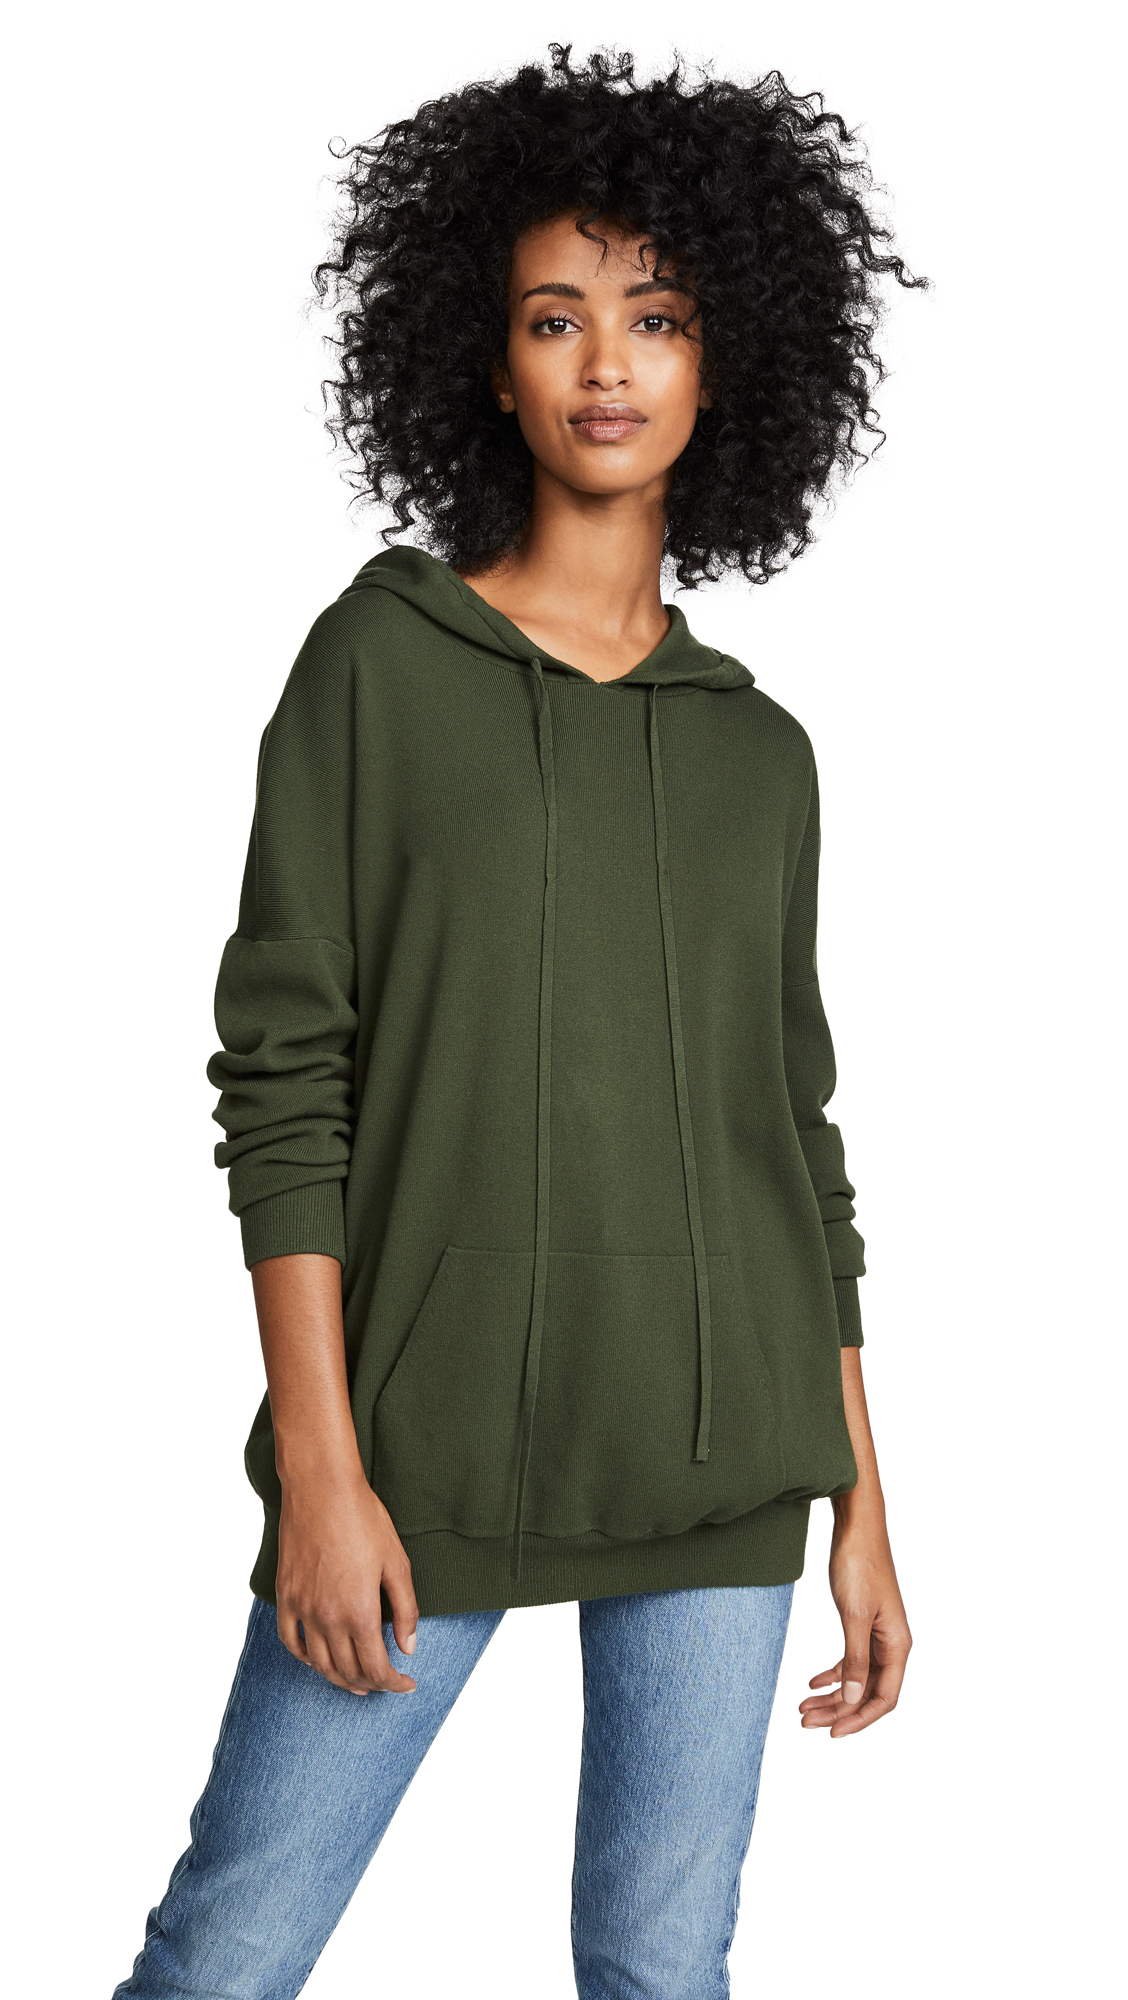 LIVE THE PROCESS Oversized Knit Hoodie in Duffel Bag Green